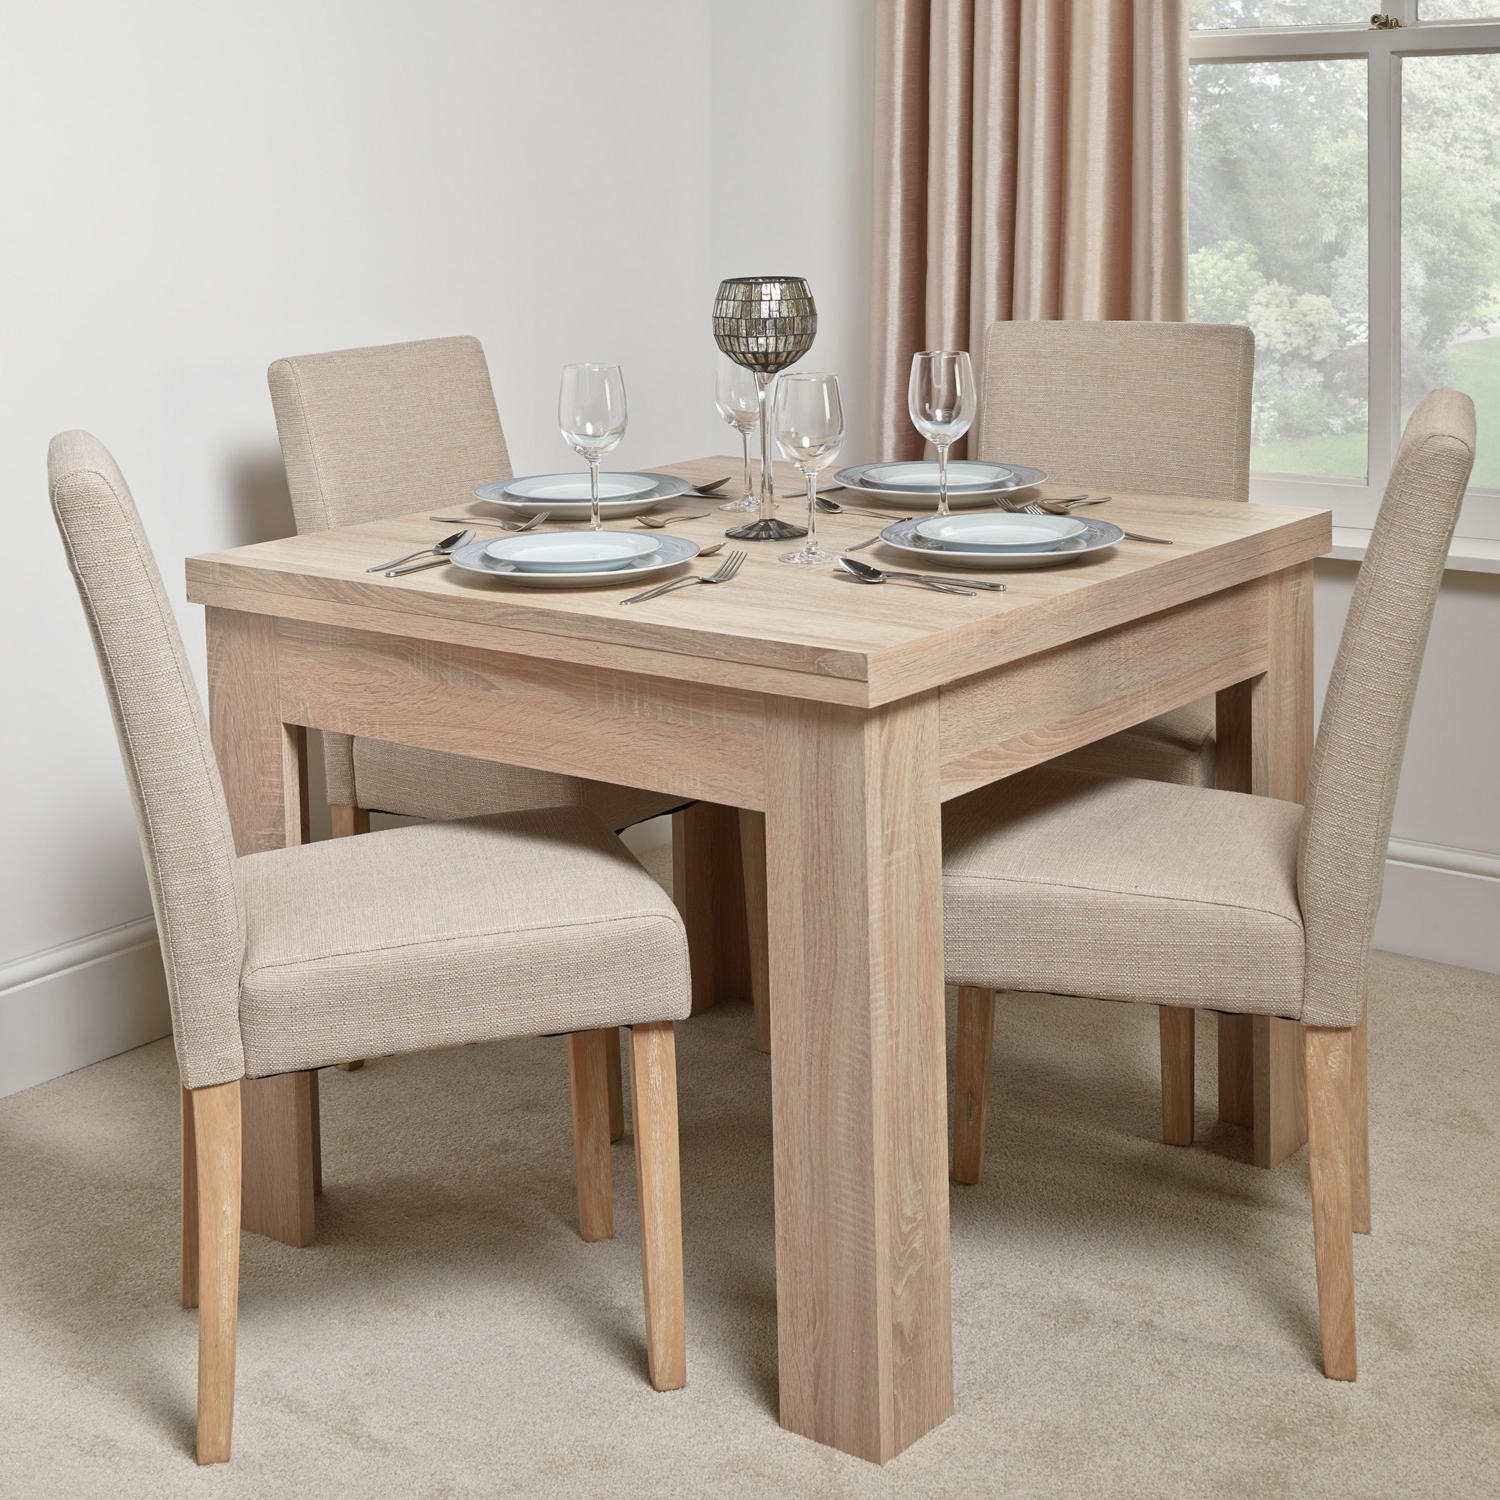 Famous Calpe Flip Extending Dining Table Within Extendable Dining Table And 4 Chairs (View 8 of 25)